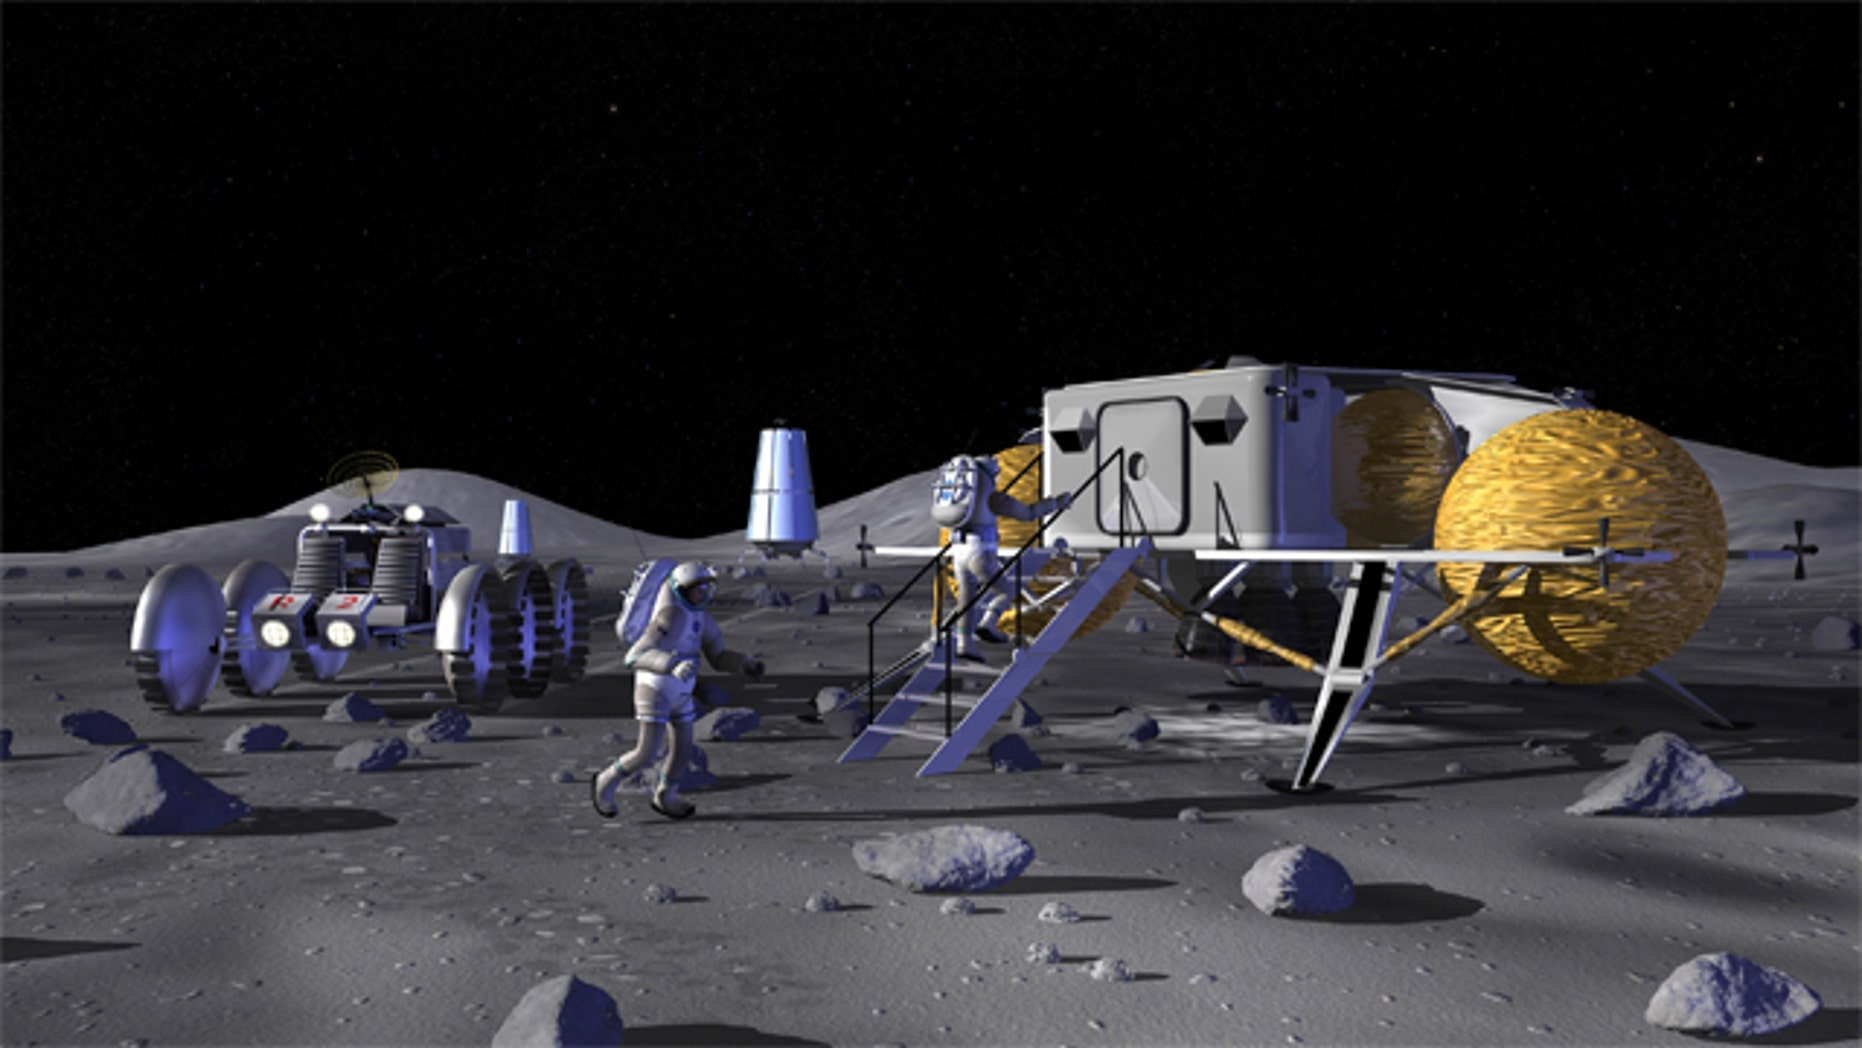 Roscosmos is discussing the possibilities for a permanent moon base with NASA and the European Space Agency.